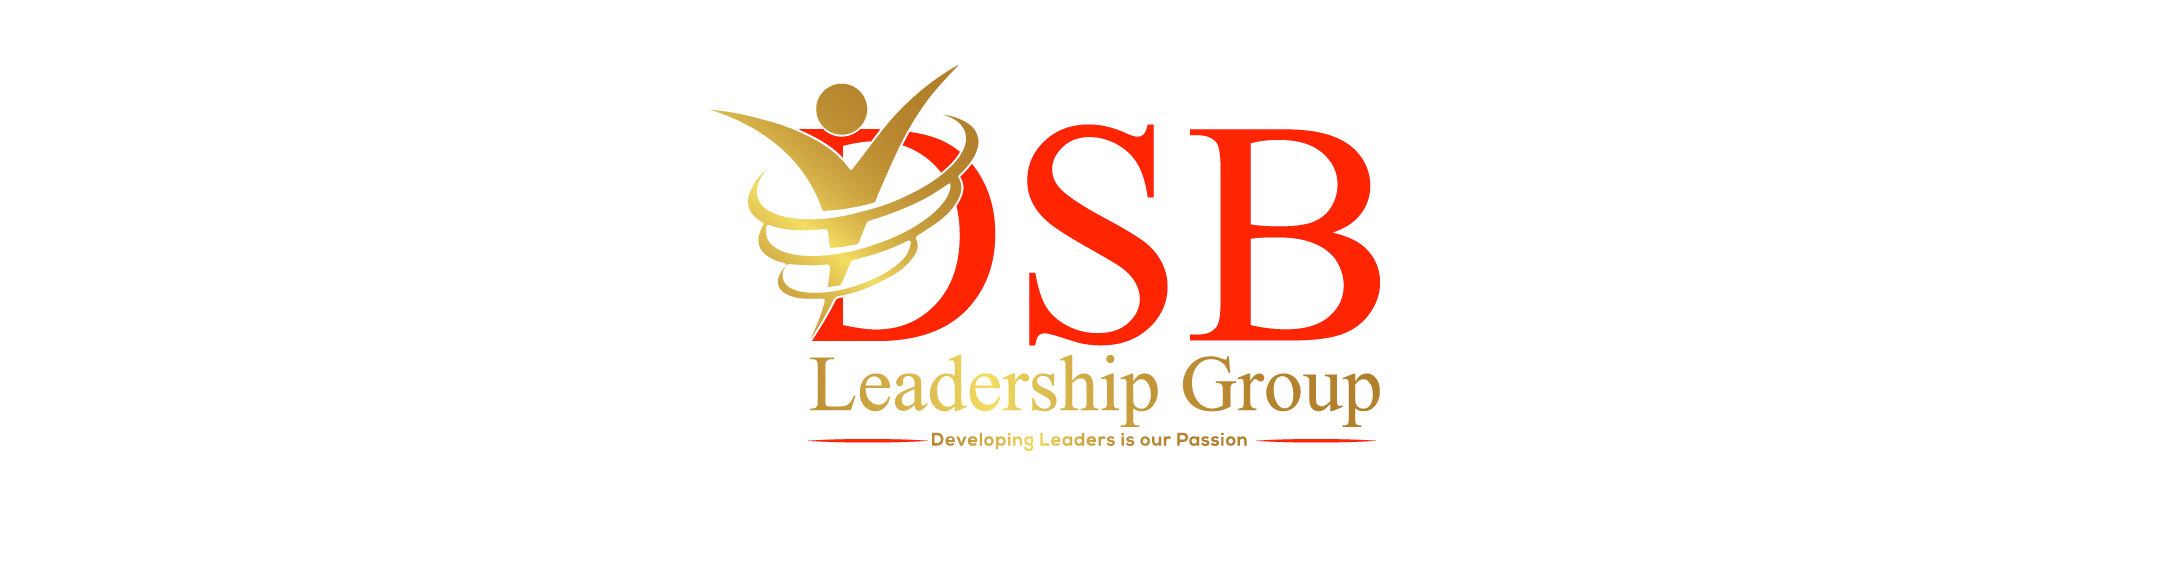 DSB Leadership Group